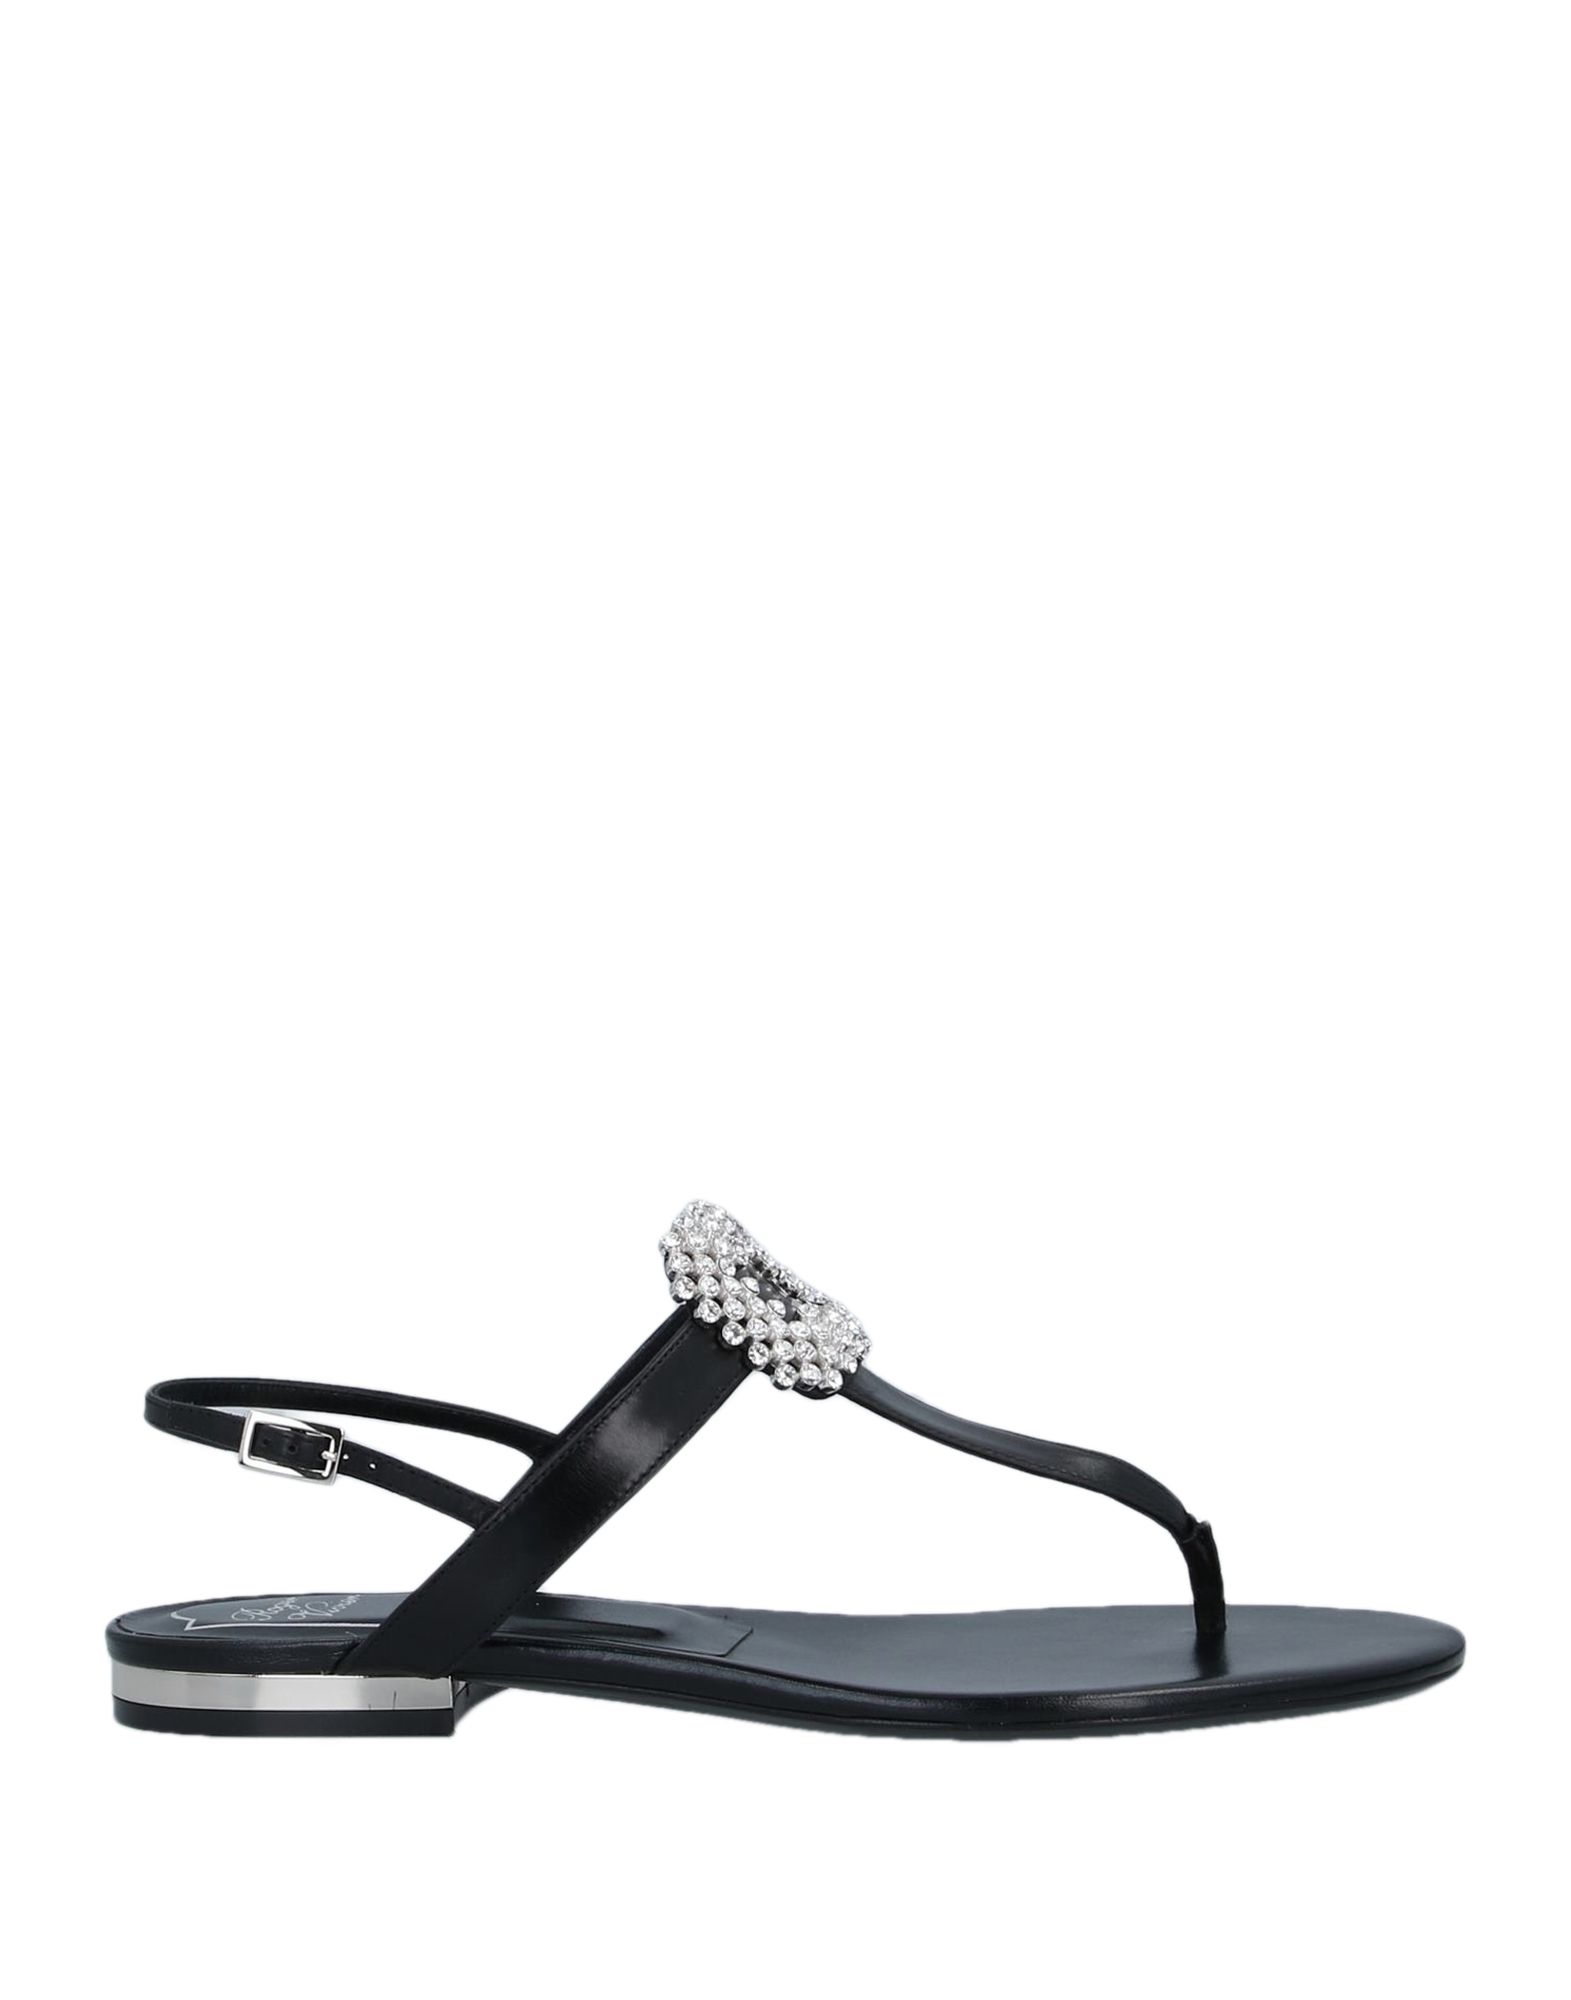 ROGER VIVIER Toe strap sandals. leather, rhinestones, solid color, round toeline, flat, leather lining, leather sole, contains non-textile parts of animal origin. Soft Leather